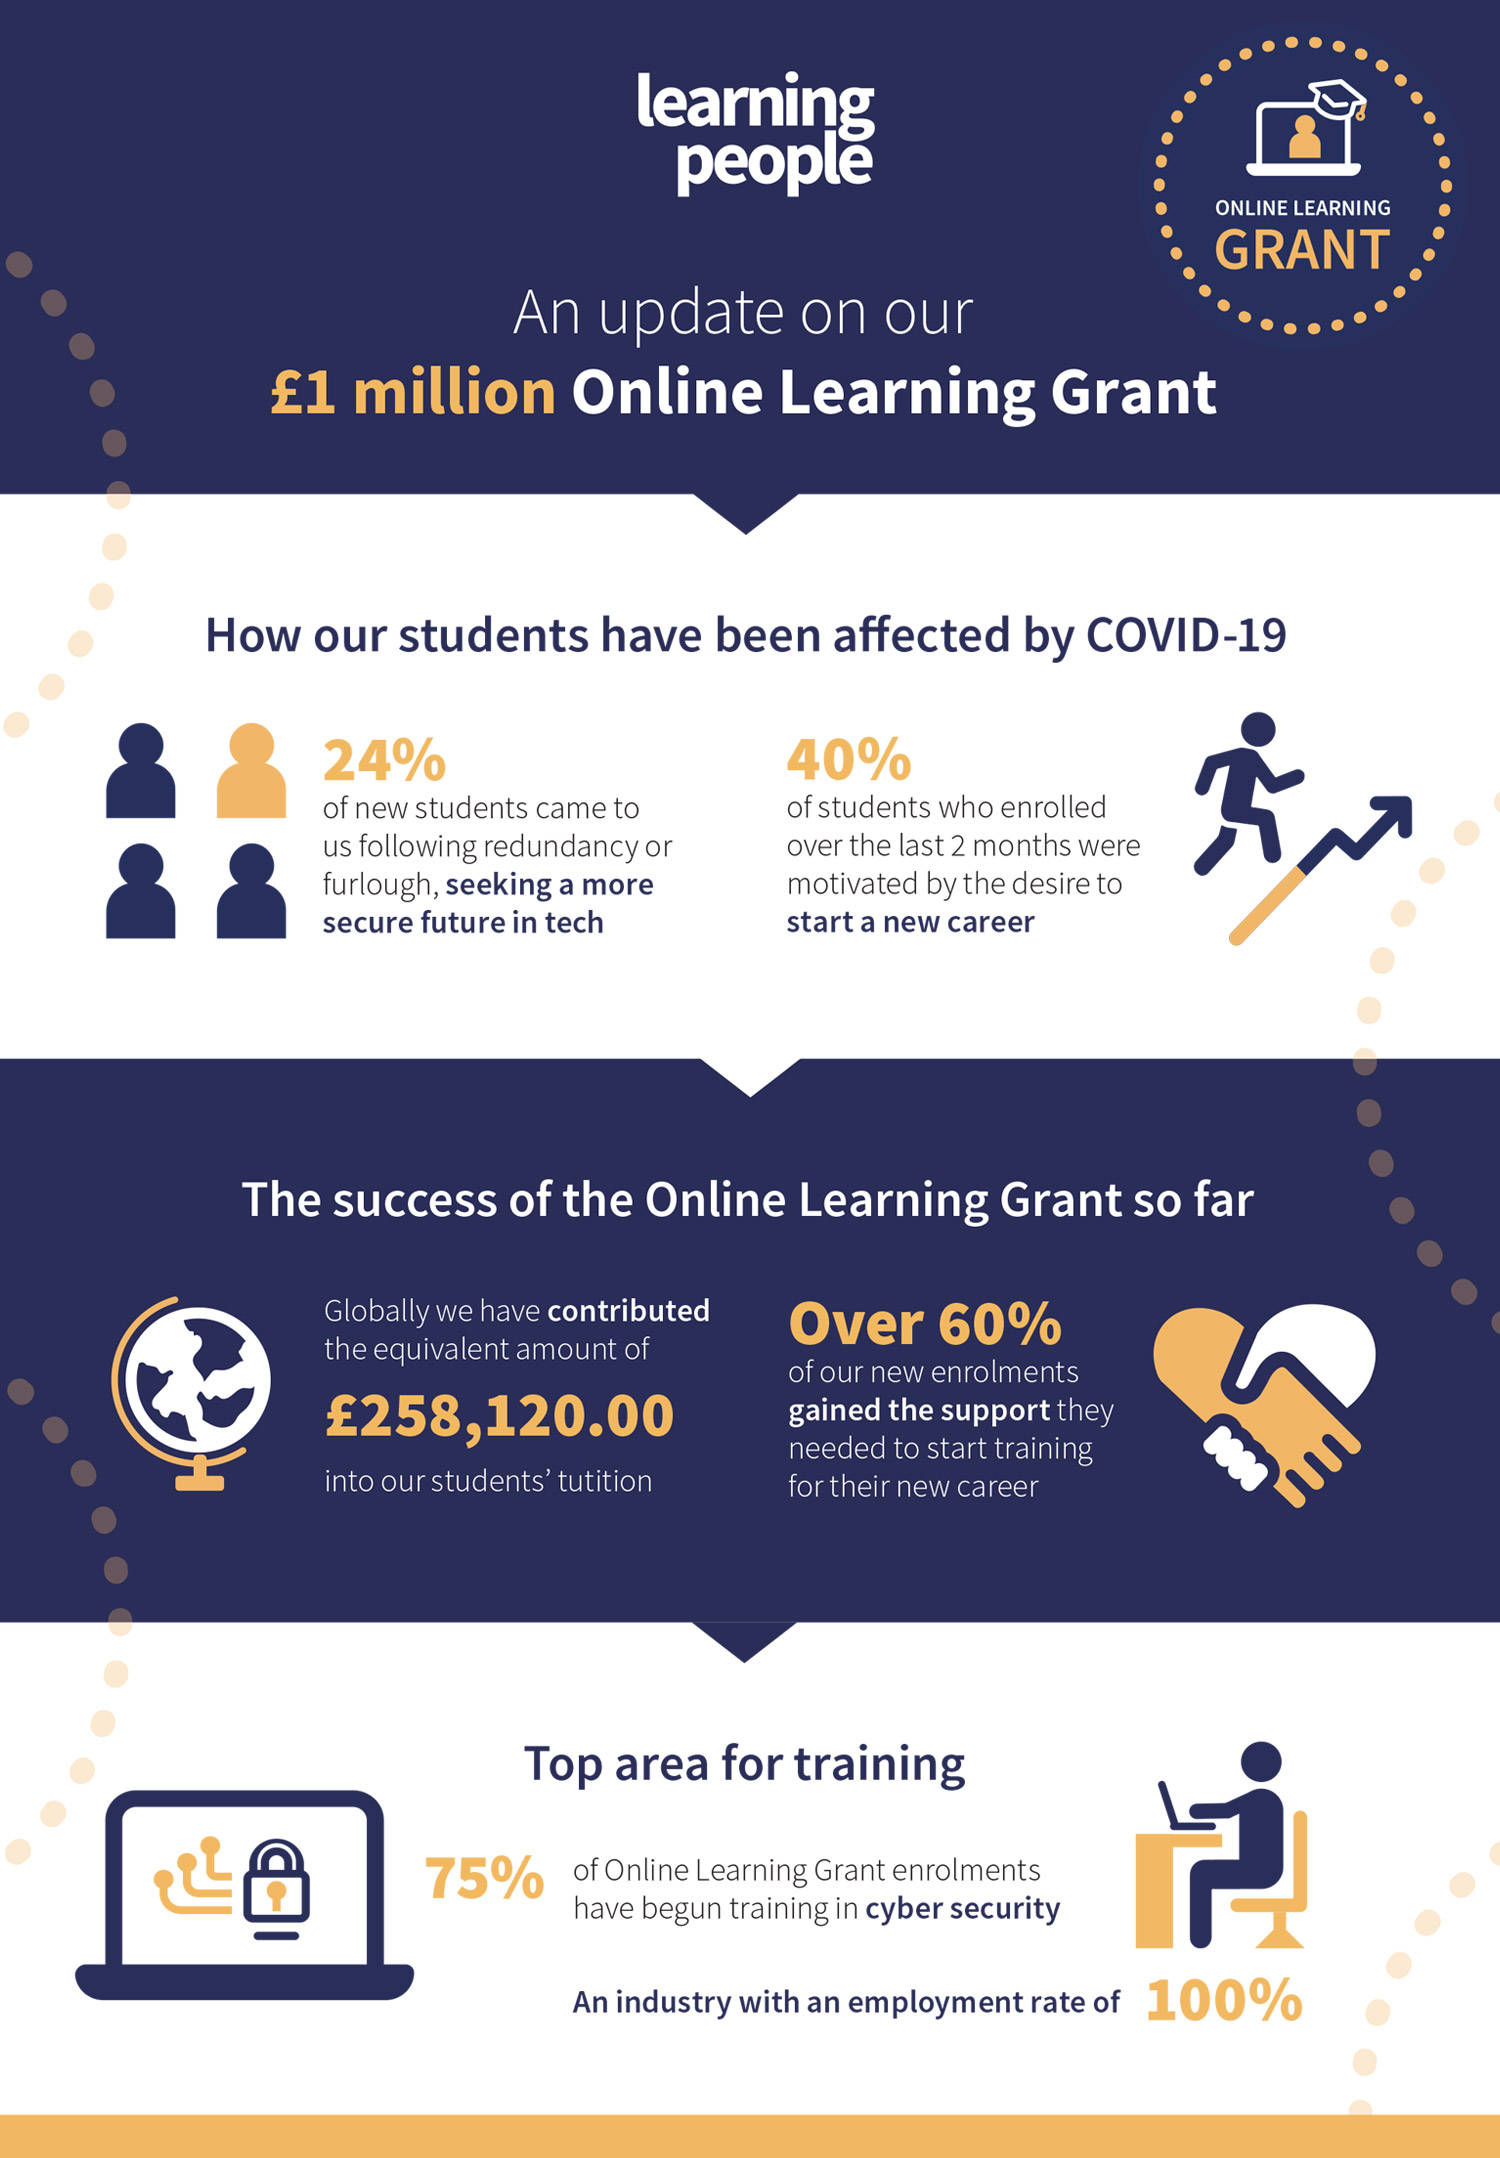 Learning People | Online Learning Grant results infographic